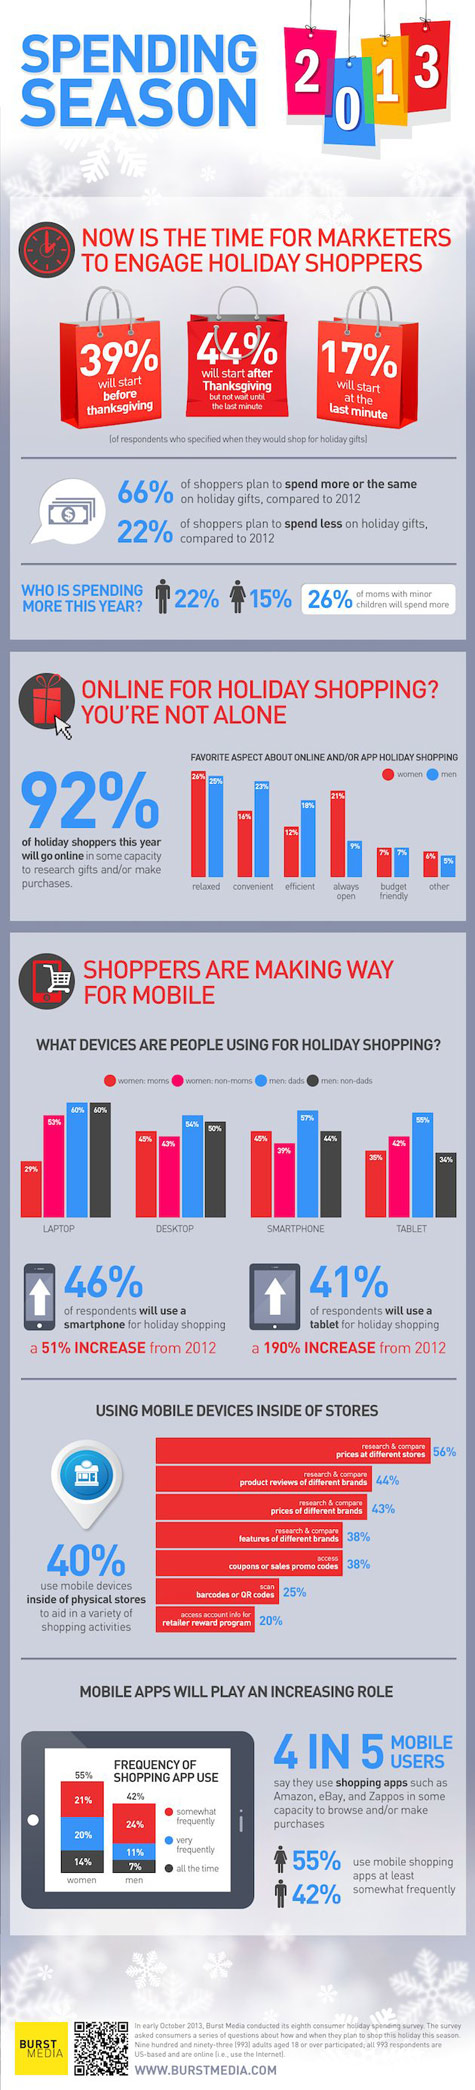 This Holiday Shopping Season, Some of the Biggest Crowds Will be Found Online [Infographic]